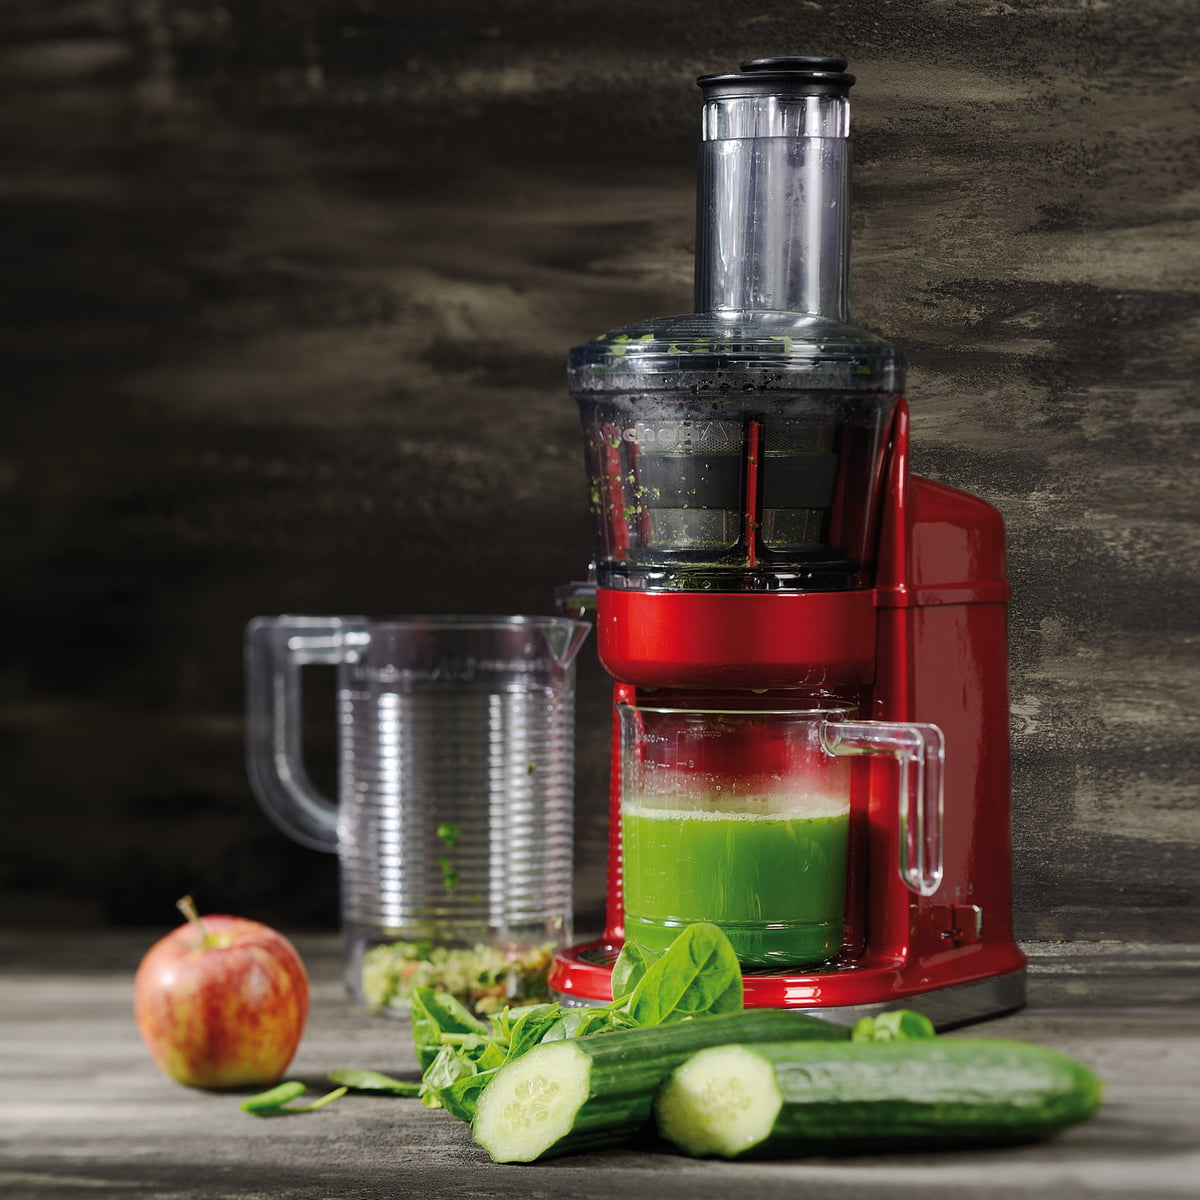 Kitchenaid Slowjuicer Recepten : Maximum Juicer by KitchenAid in the shop